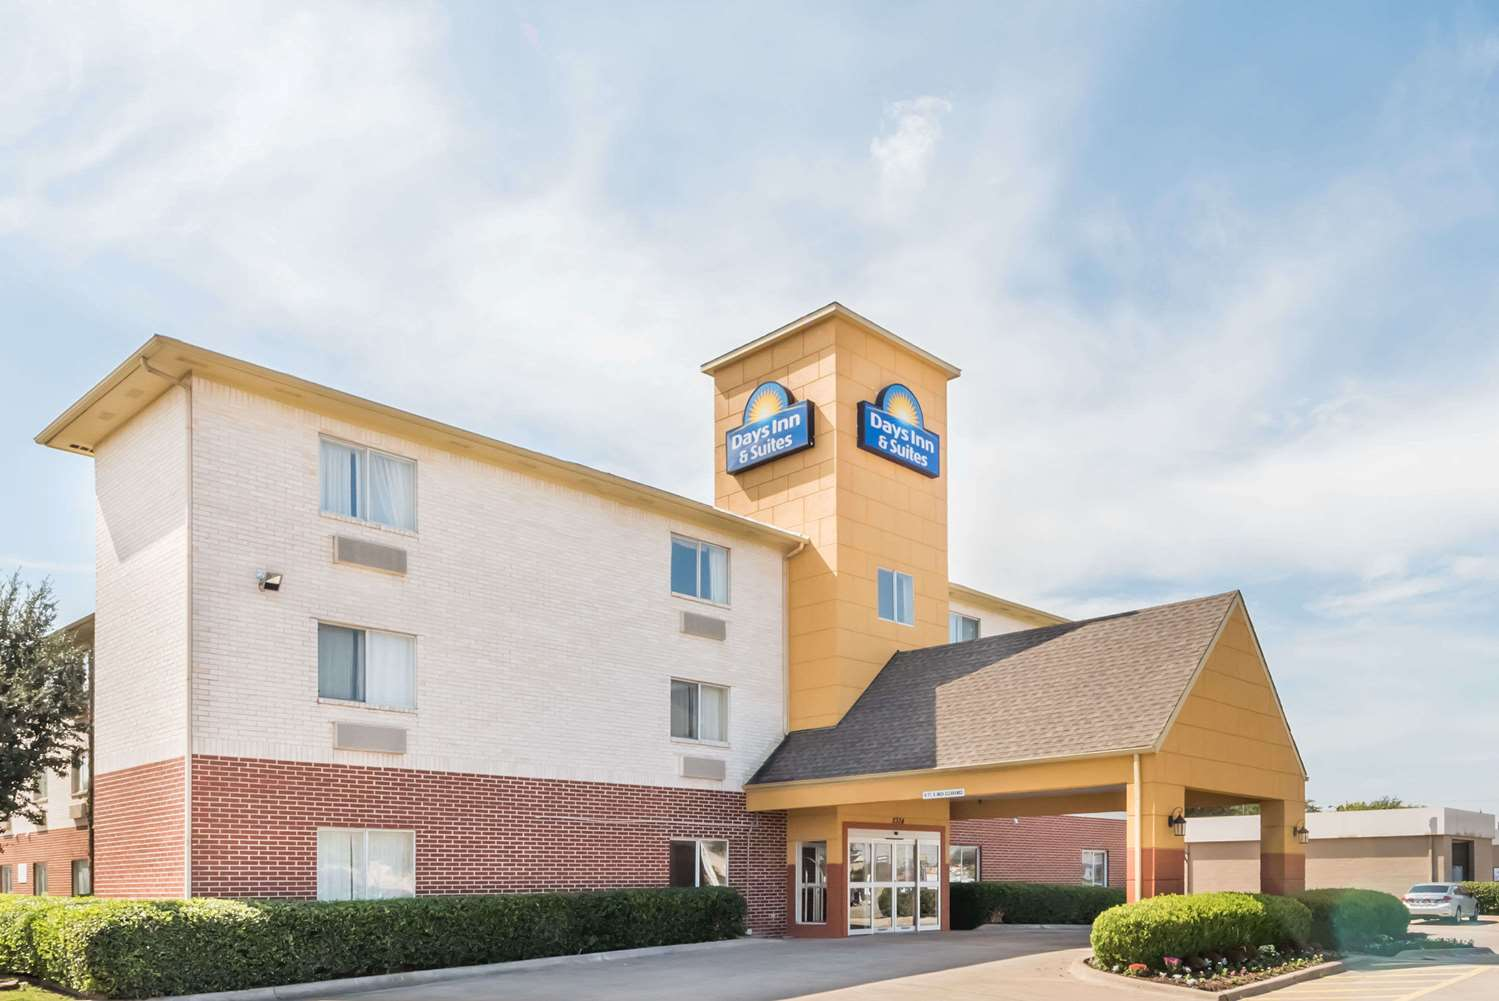 Exterior view - Days Inn & Suites Northwest Dallas